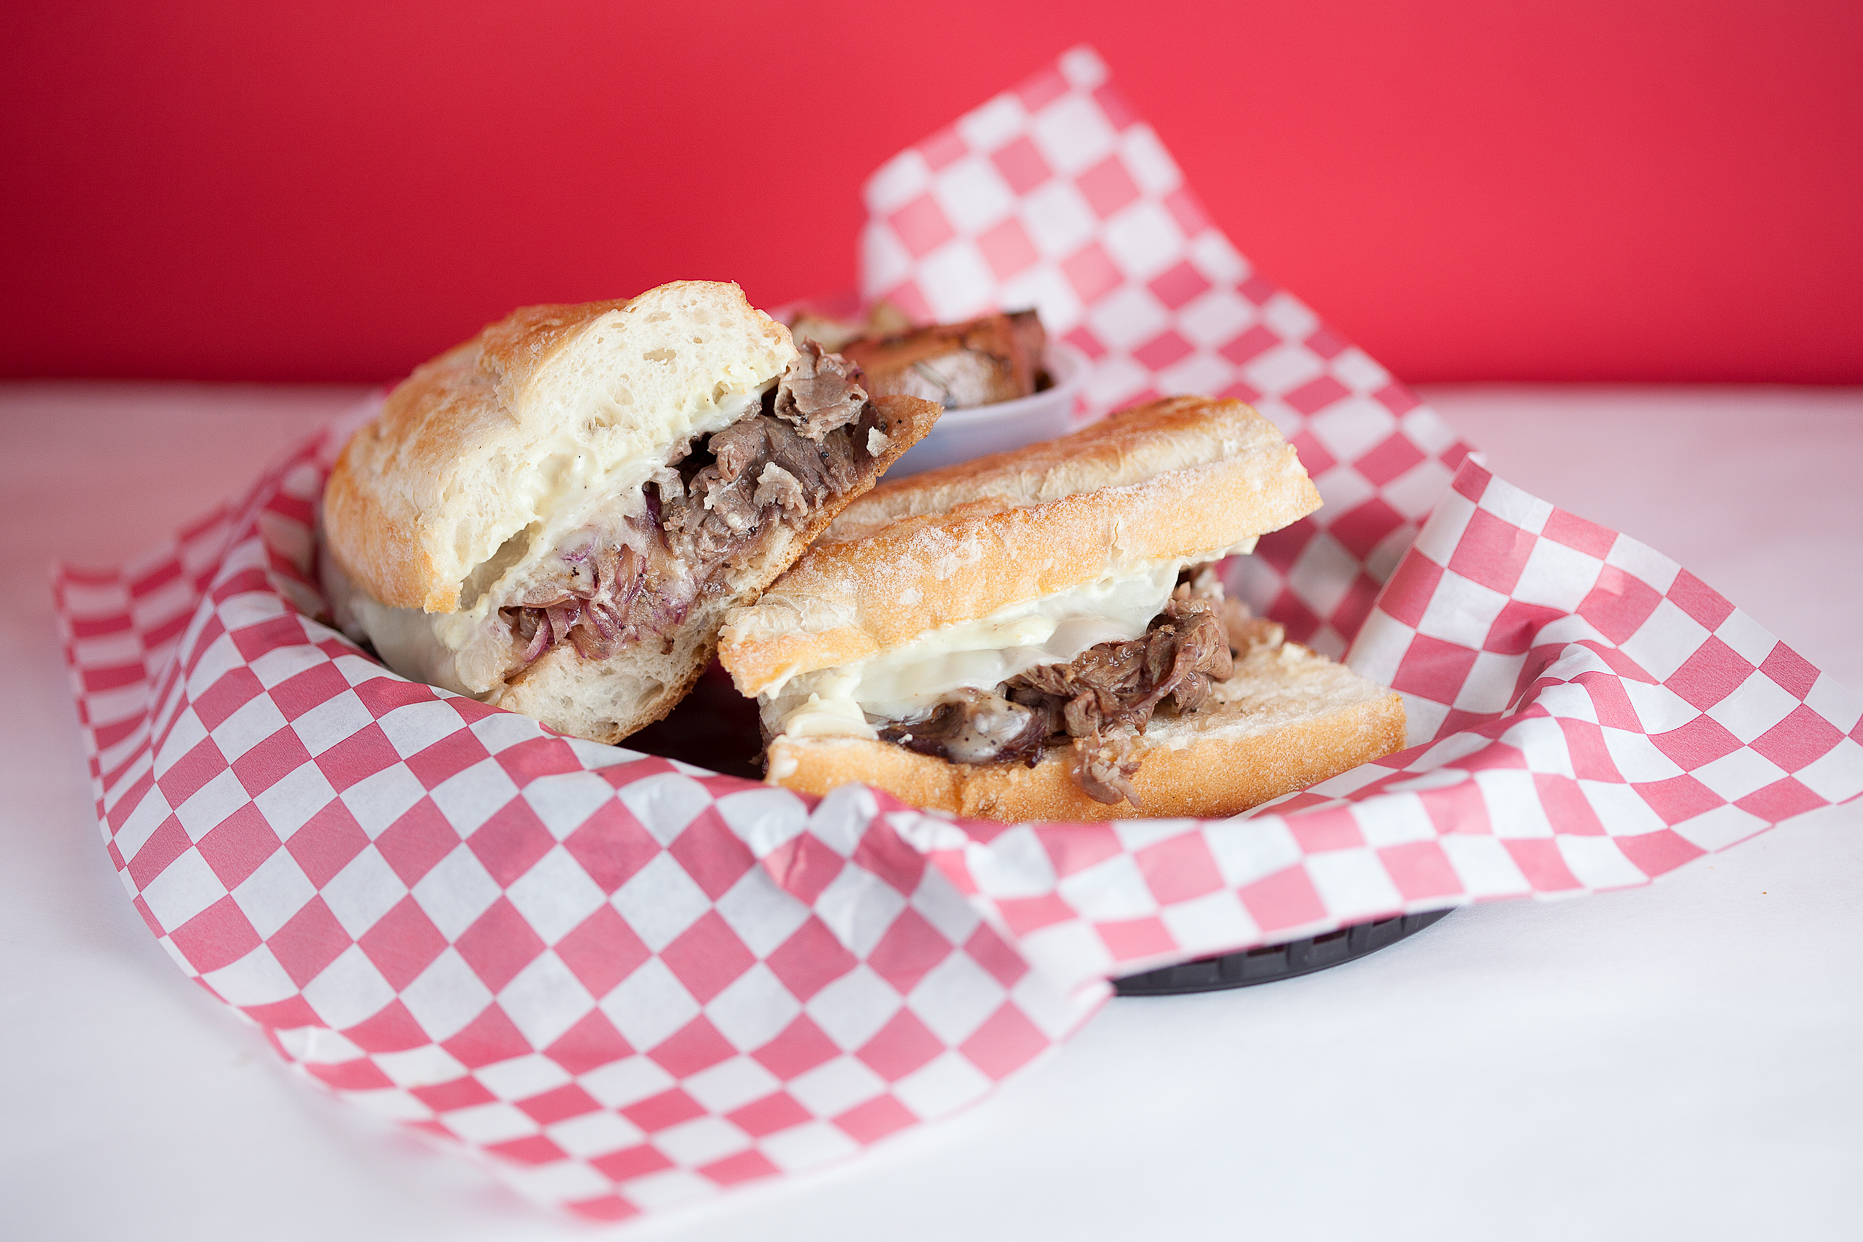 Prime Rib Philly - Alderwood slow smoked prime rib tossed with hardwood smoked provolone, grilled onions, jus, and smoked garlic mayo on a Pearl Bakery French baguette. Comes with one free side. (Gluten-Free bread available)11.25/14.50